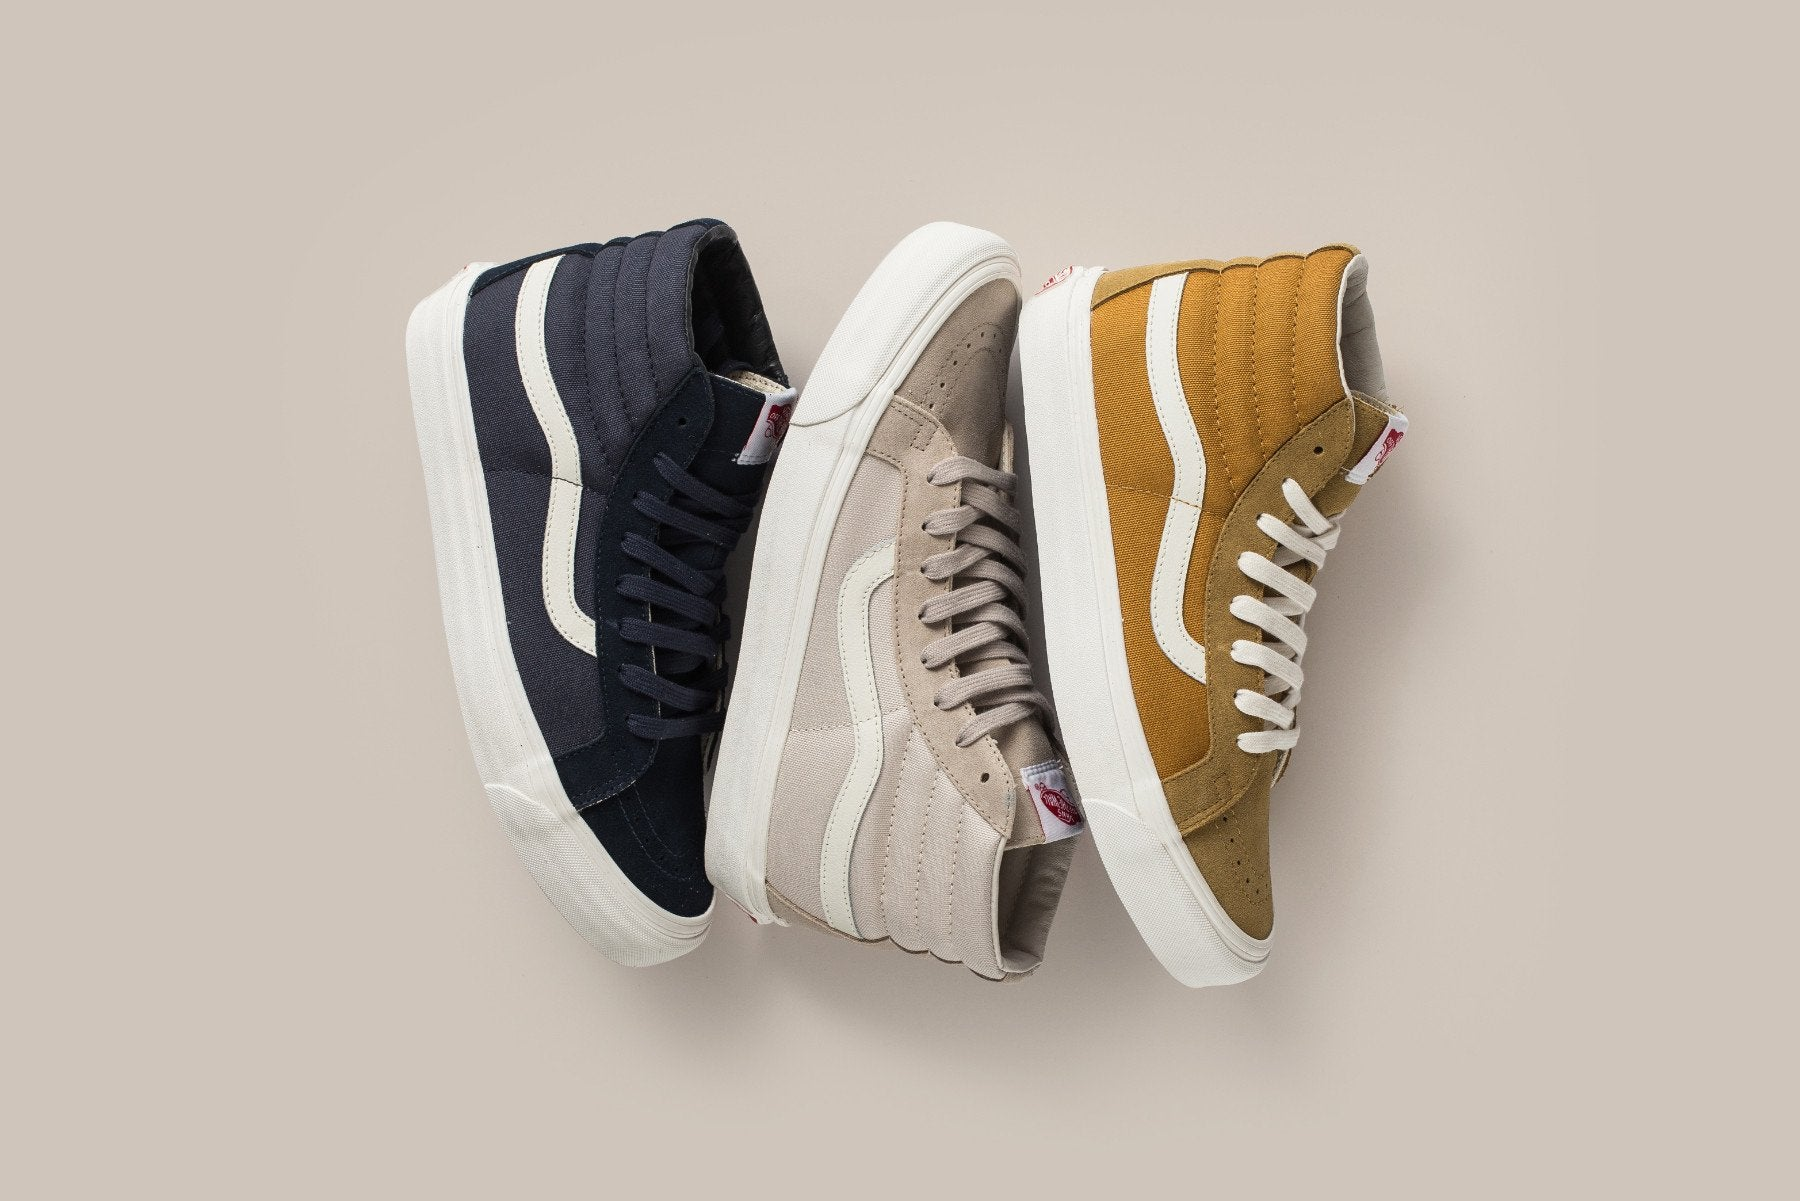 fcadf941a Vans Vault Suede Canvas OG Sk8-Hi February 8 2017 Feature Lv-1.jpg v 1535447562